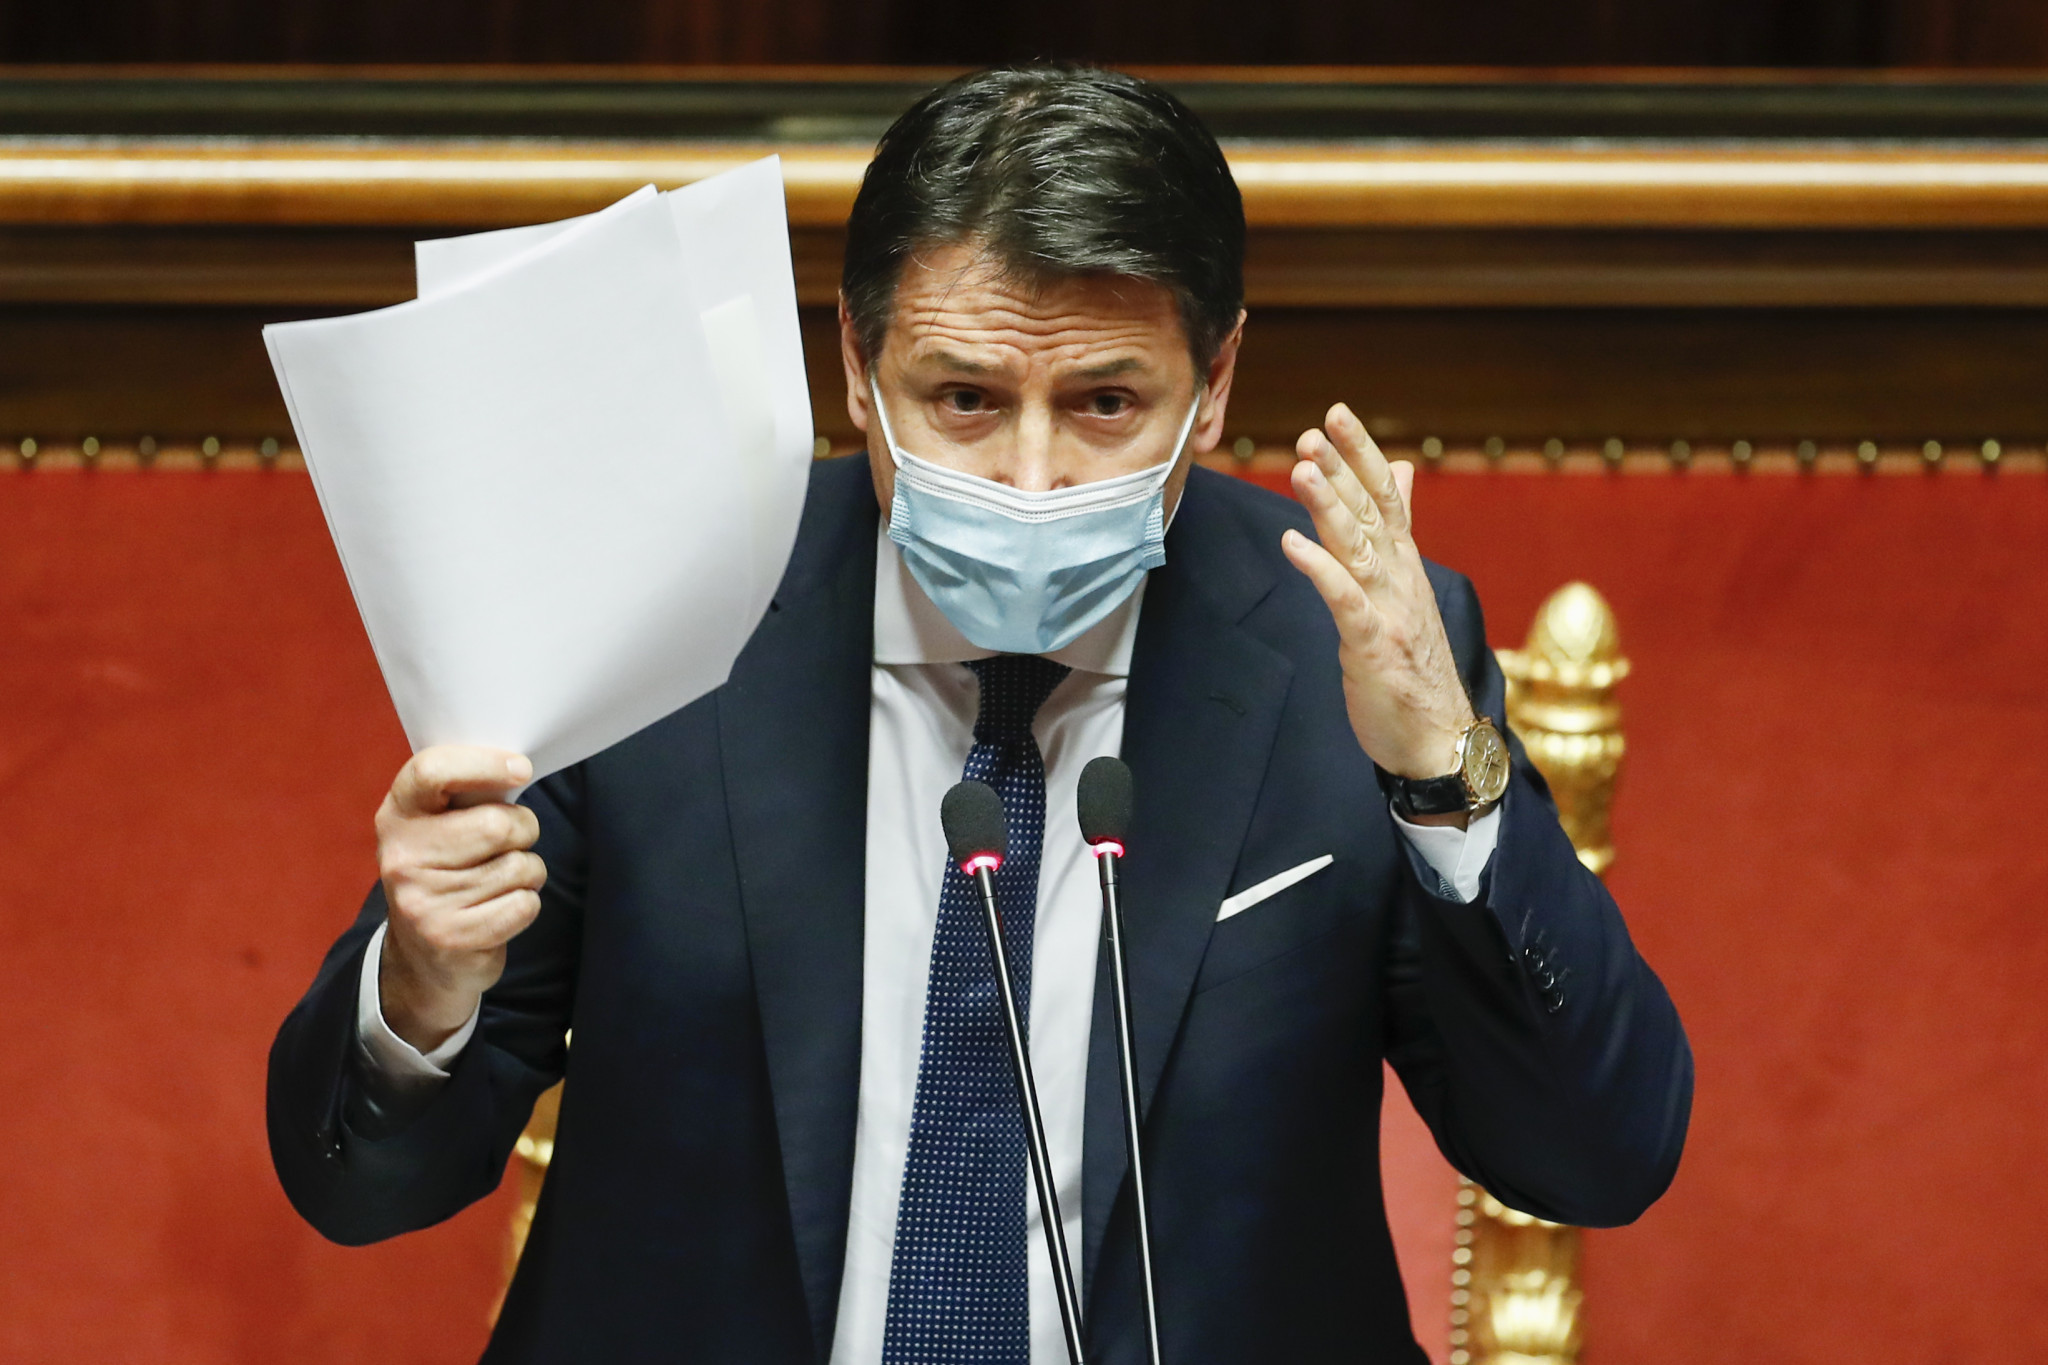 Giuseppe Conte has resigned as the Italian Prime Minister due to his handling of COVID-19 ©Getty Images